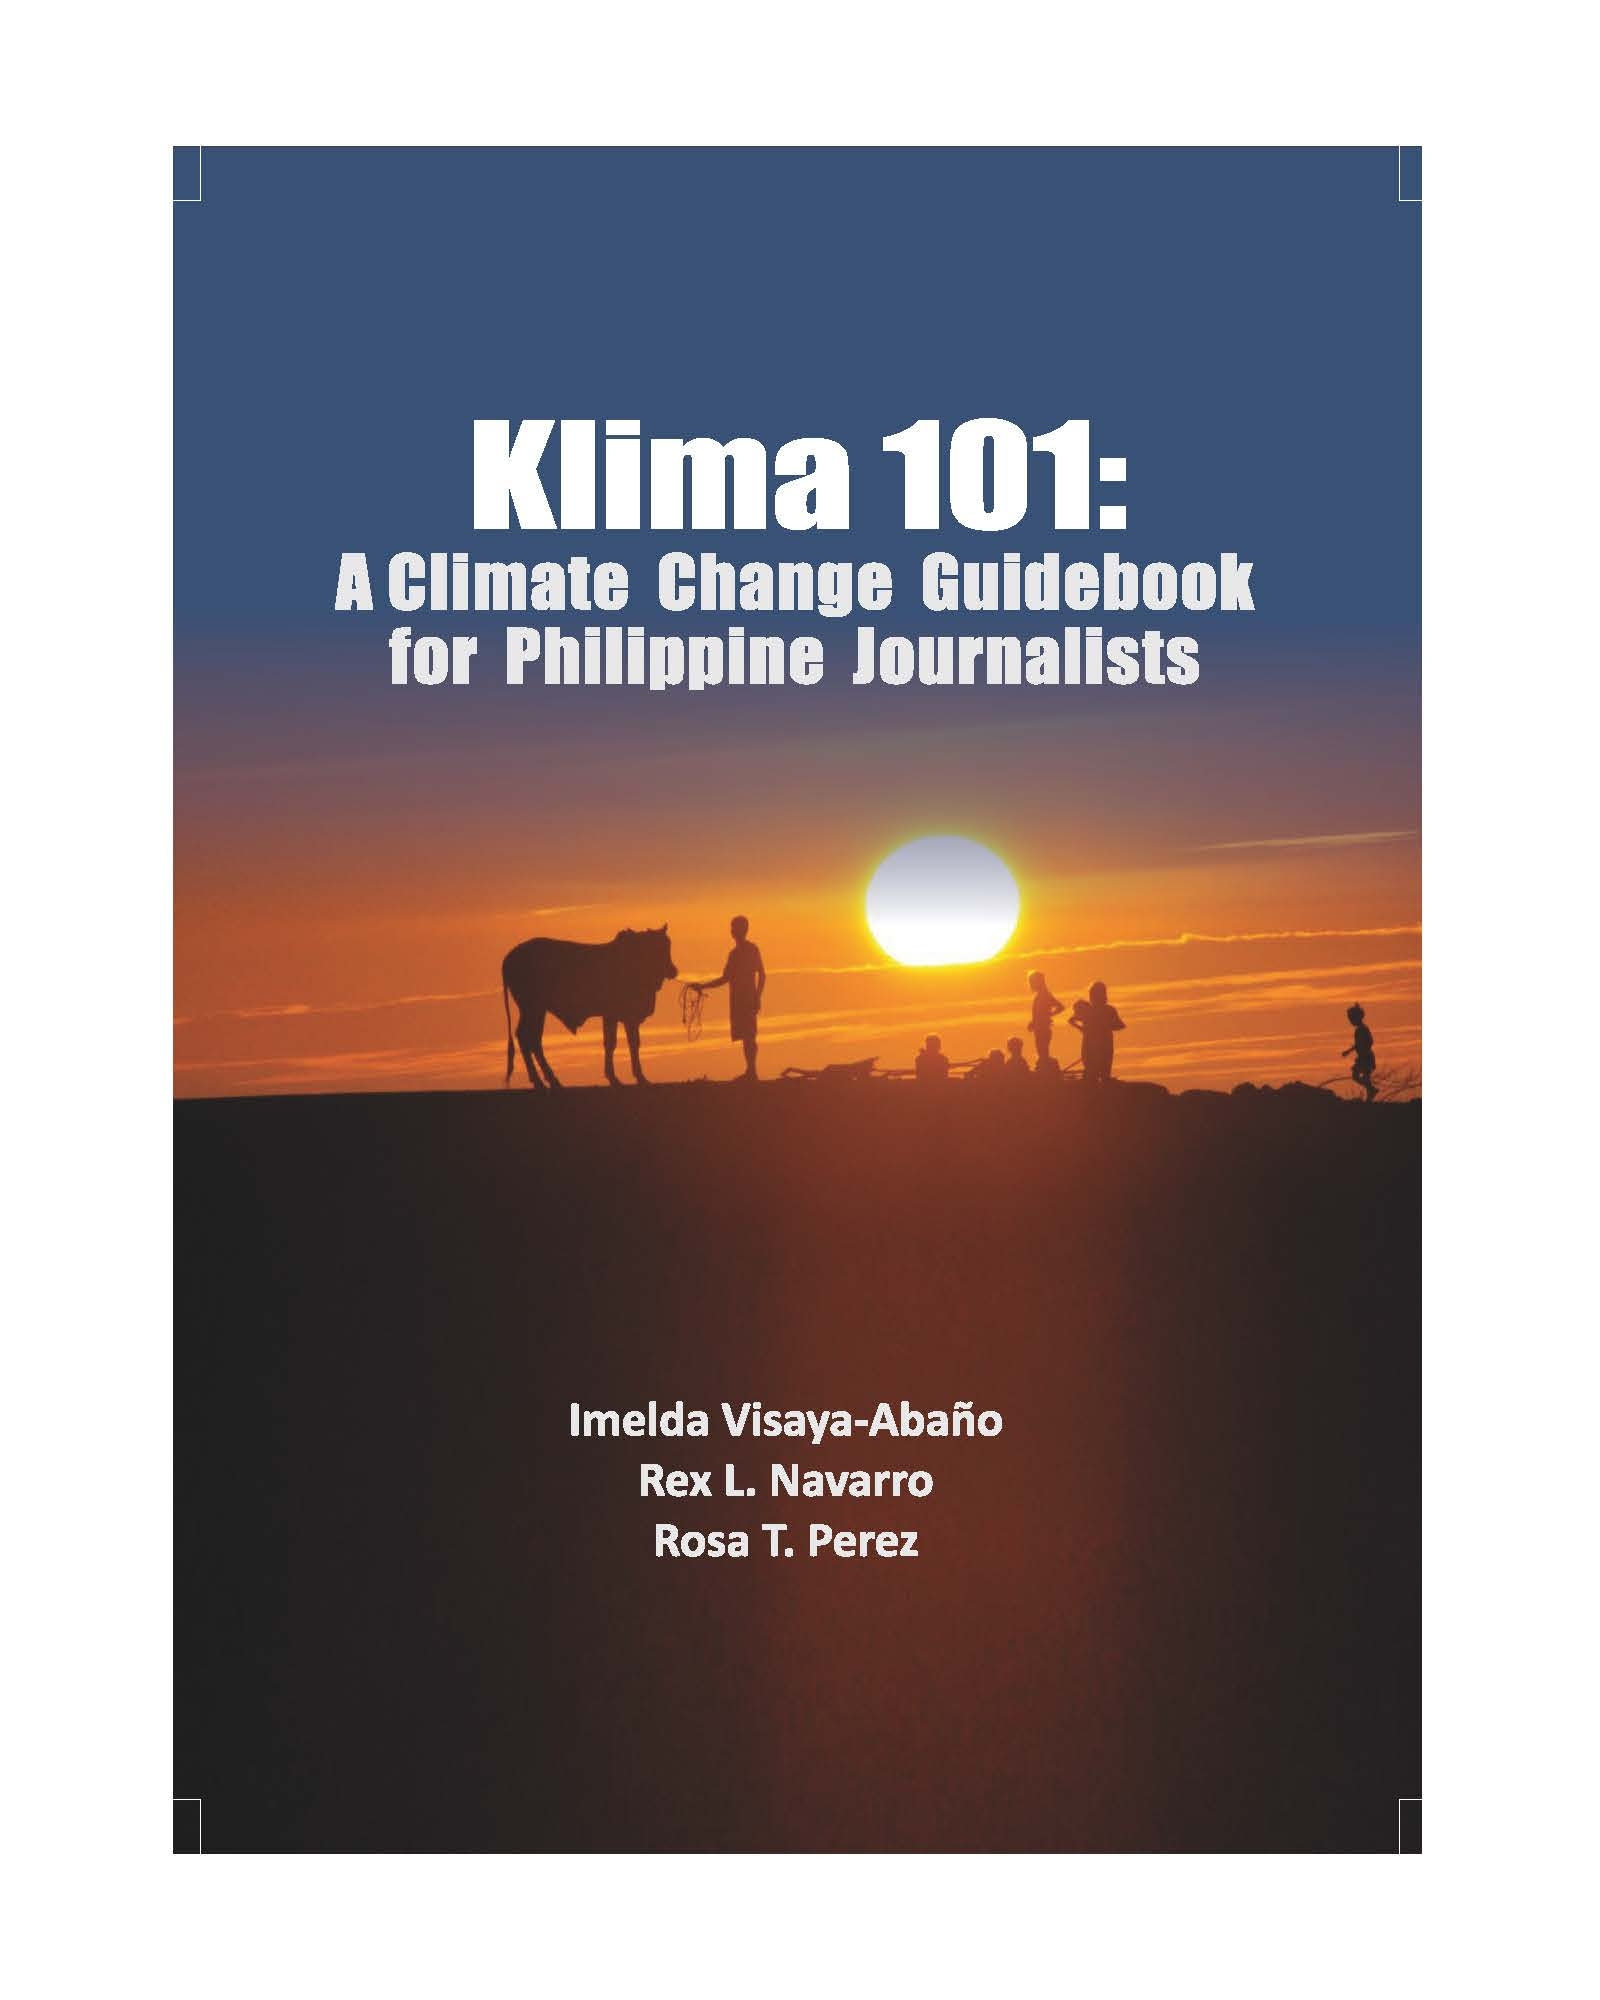 Klima 101: A Climate Change Guidebook for Philippine Journalists